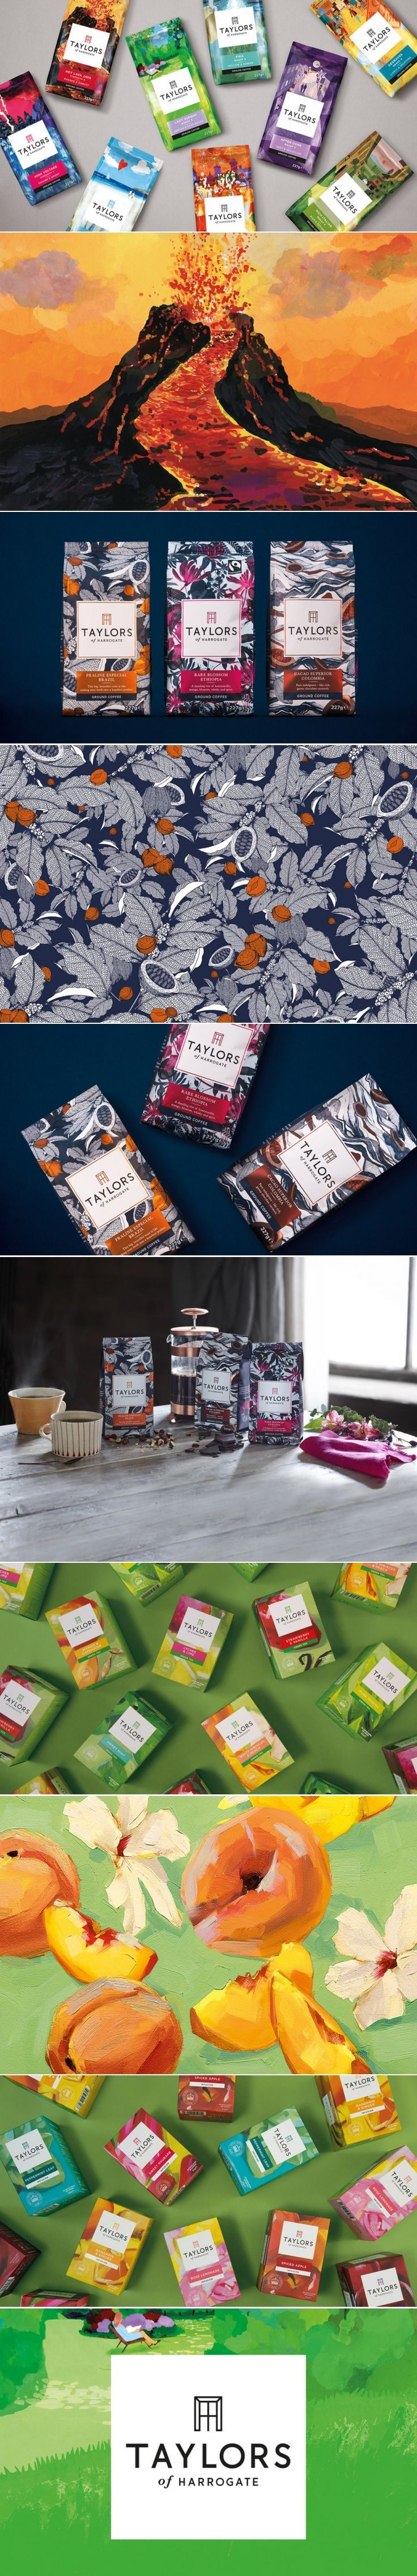 Taylors of Harrogate Unveils Bold New Packaging — The Dieline | Packaging & Branding Design & Innovation News